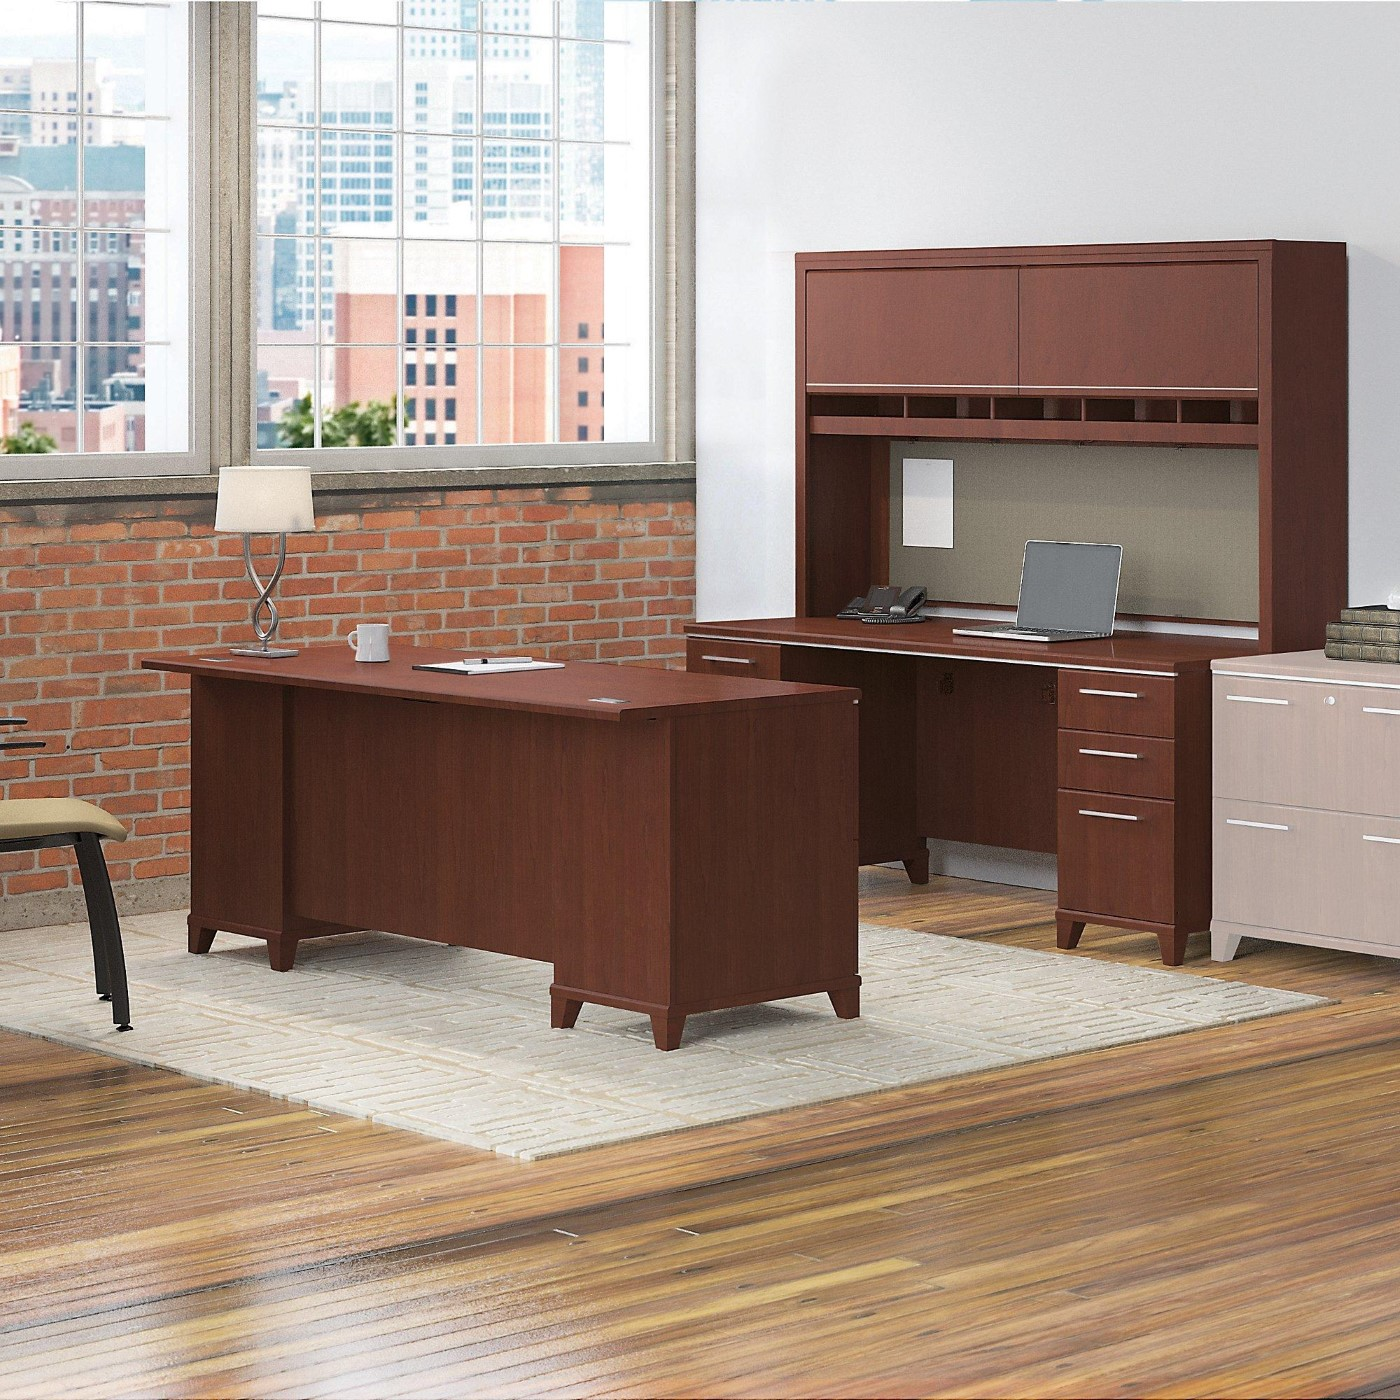 Bush Business Furniture Enterprise 72W Office Desk With Hutch, 2 Pedestals  And Credenza